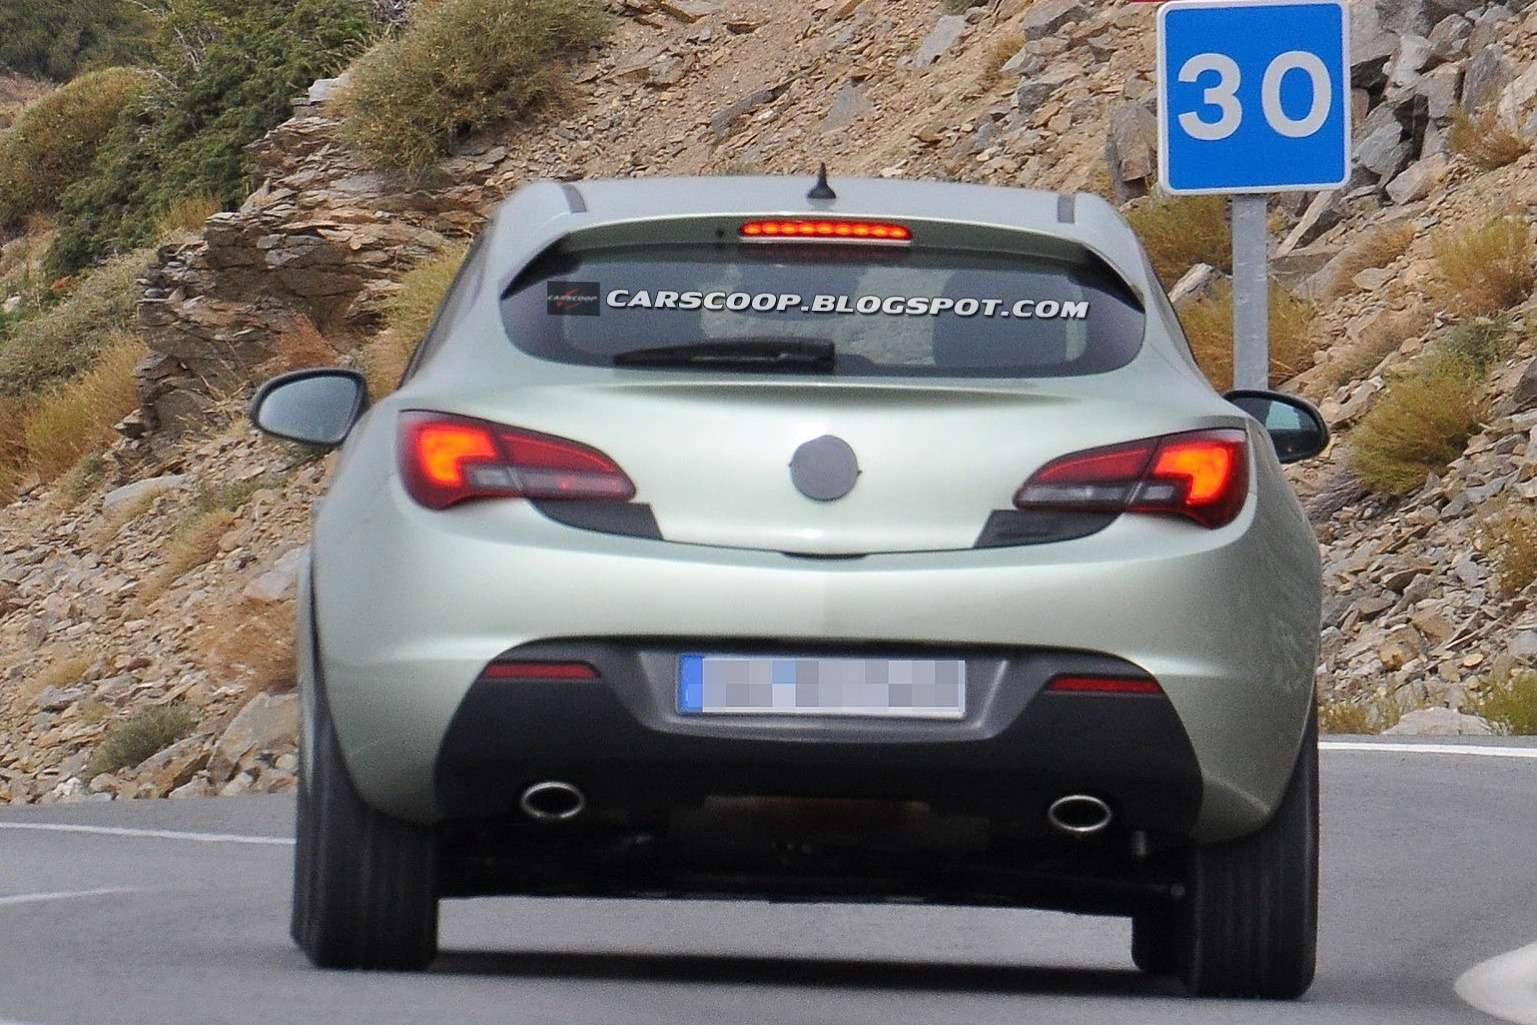 Facelifted Opel Astra GTC test prototype rear view_no_copyright